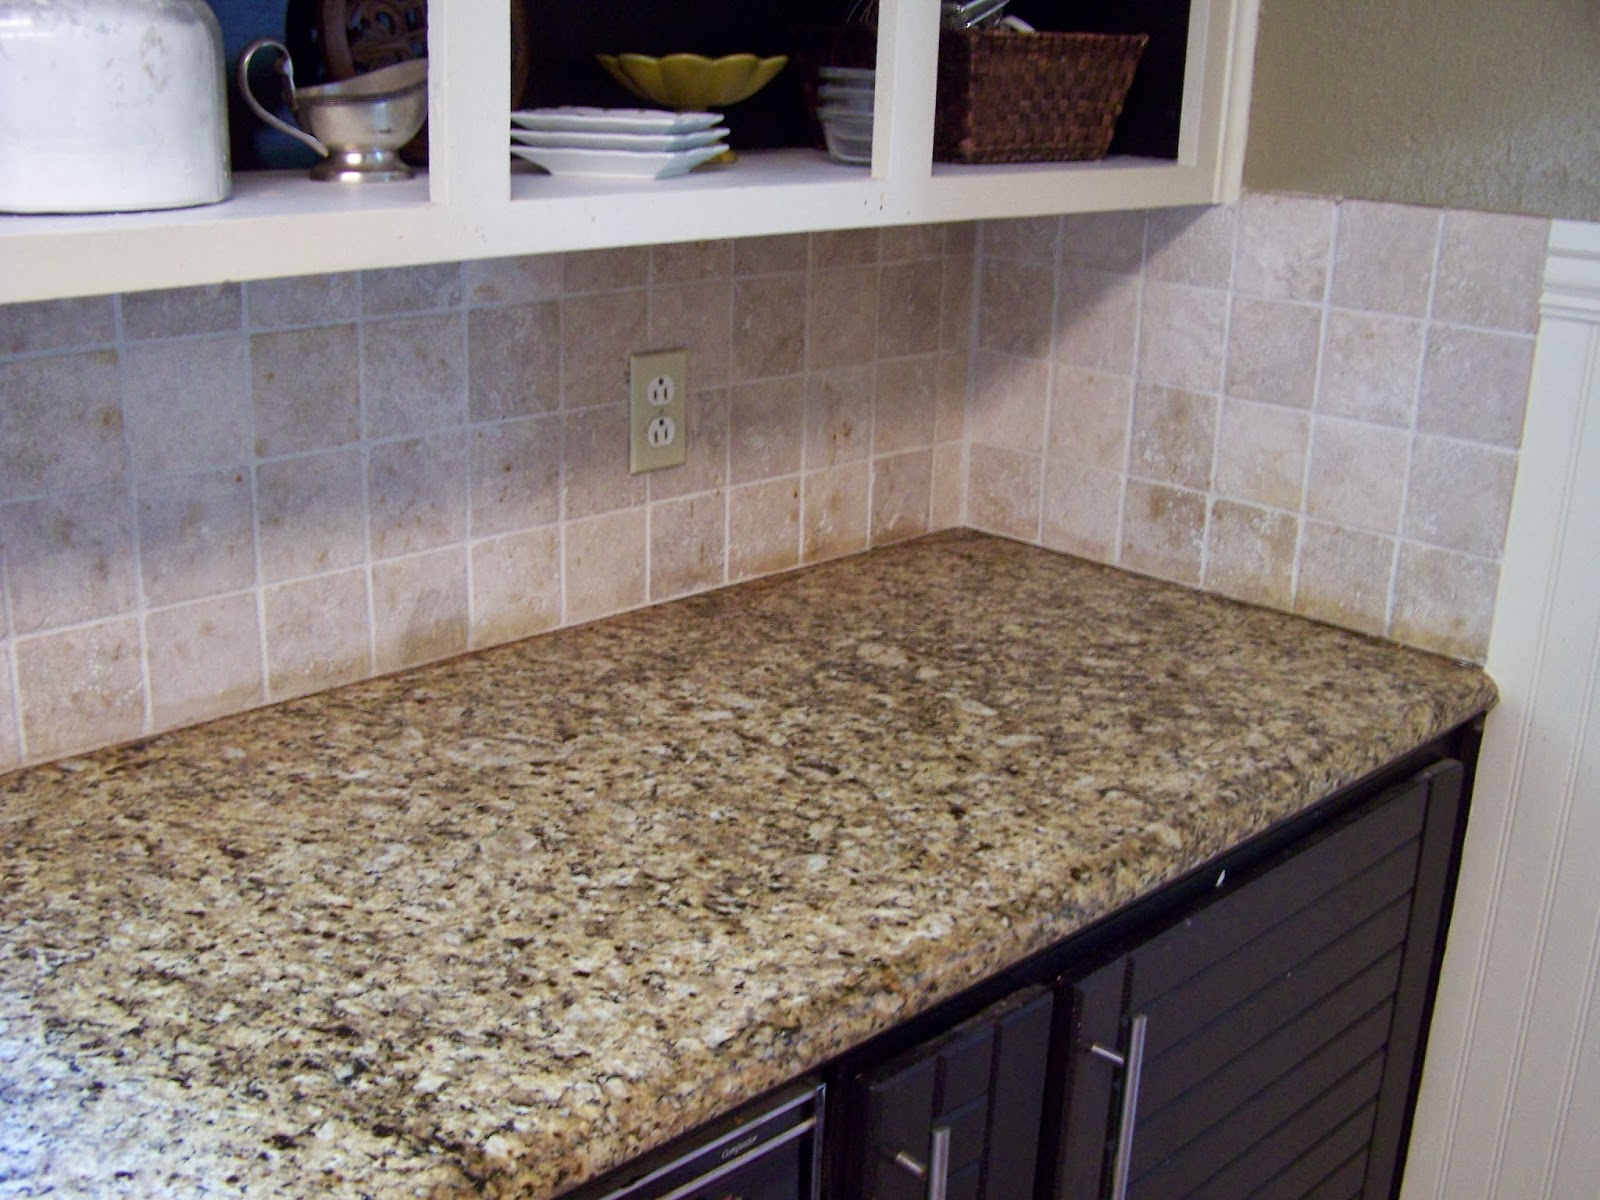 Older and wisor painting a tile backsplash and more easy Backsplash or no backsplash